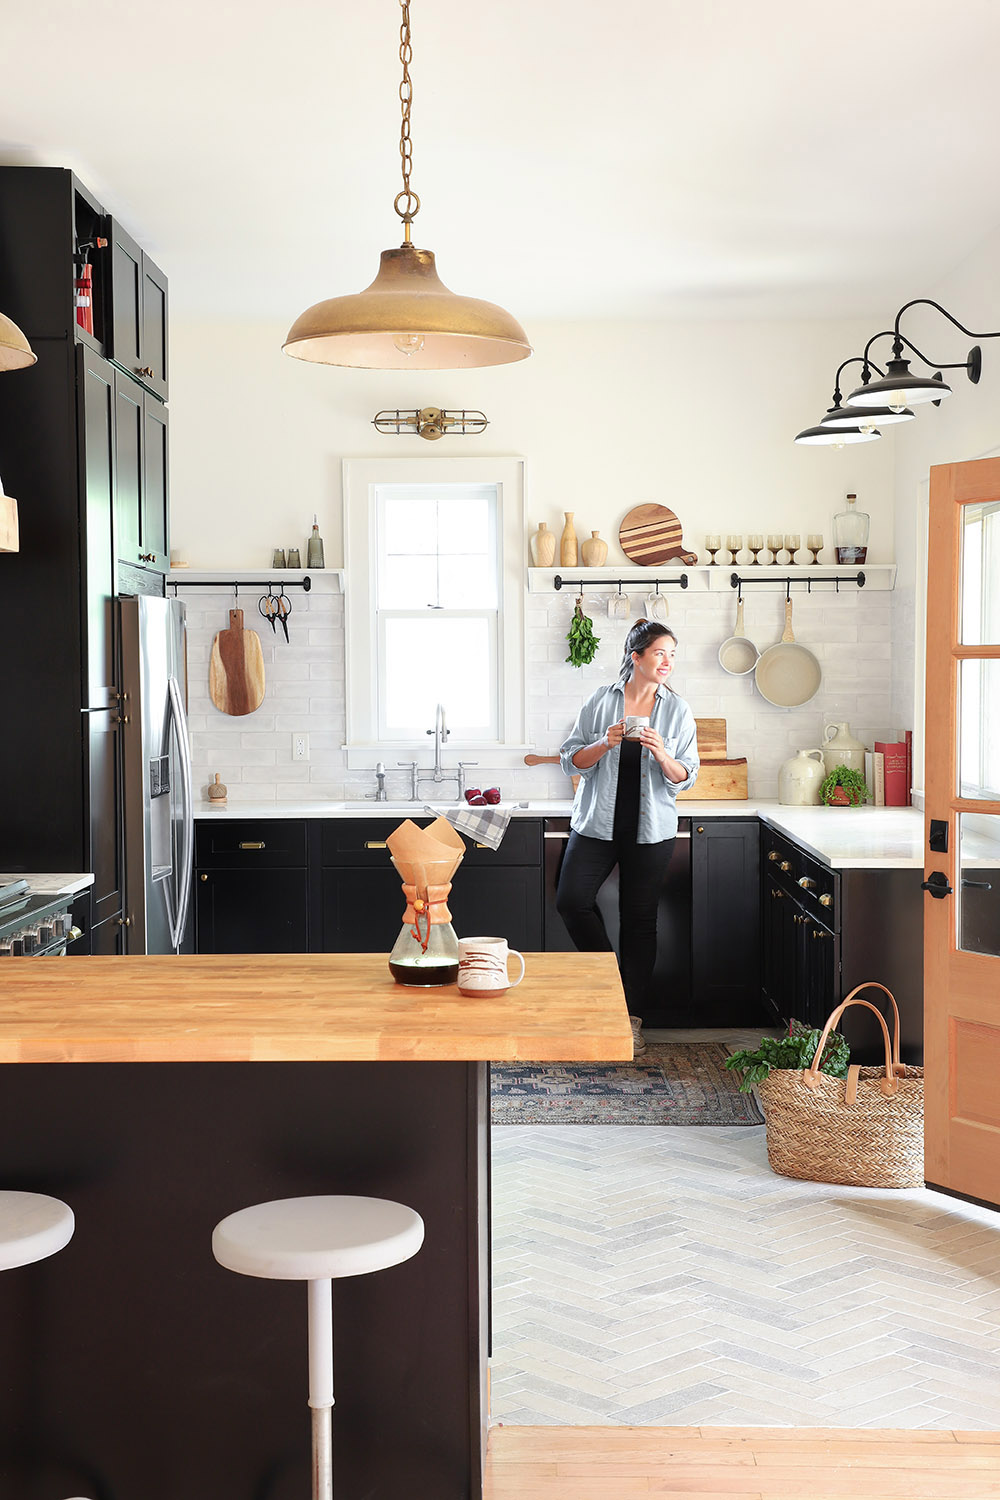 A woman standing in an updated kitchen filled with bright light.